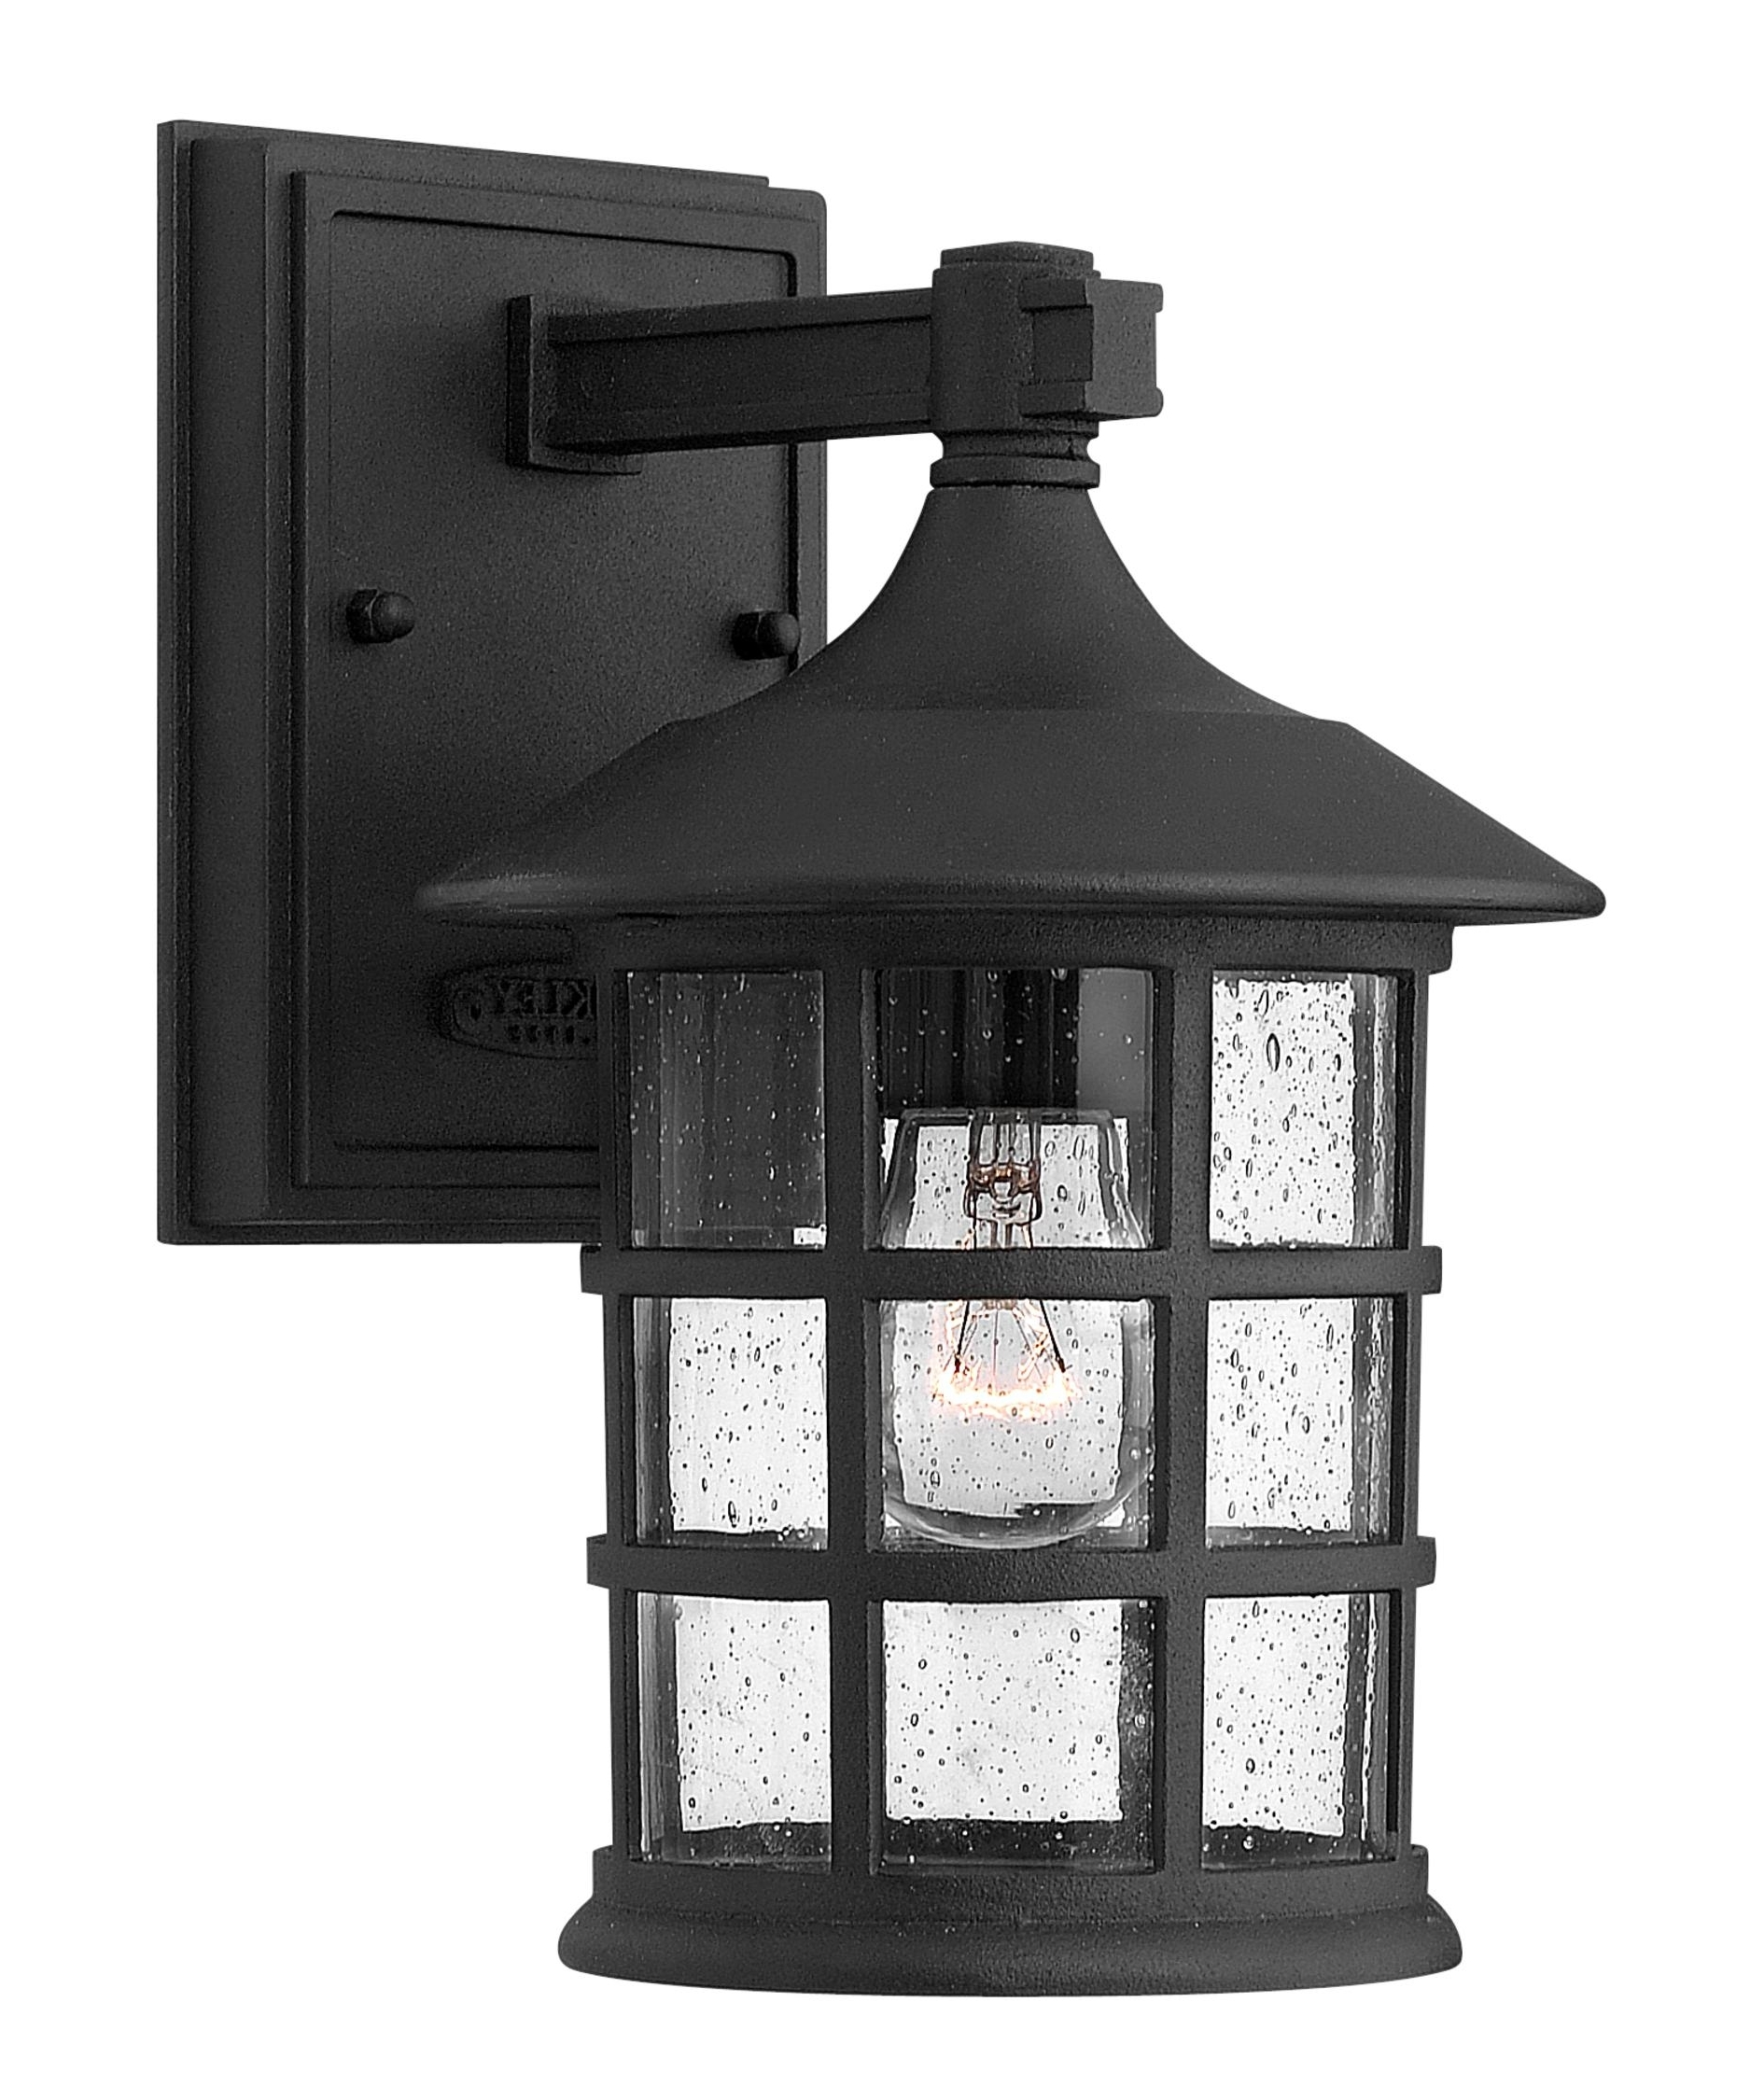 Hinkley Lighting 1800 Freeport 6 Inch Wide 1 Light Outdoor Wall Regarding Most Recently Released Outdoor Wall Lights In Black (View 6 of 20)